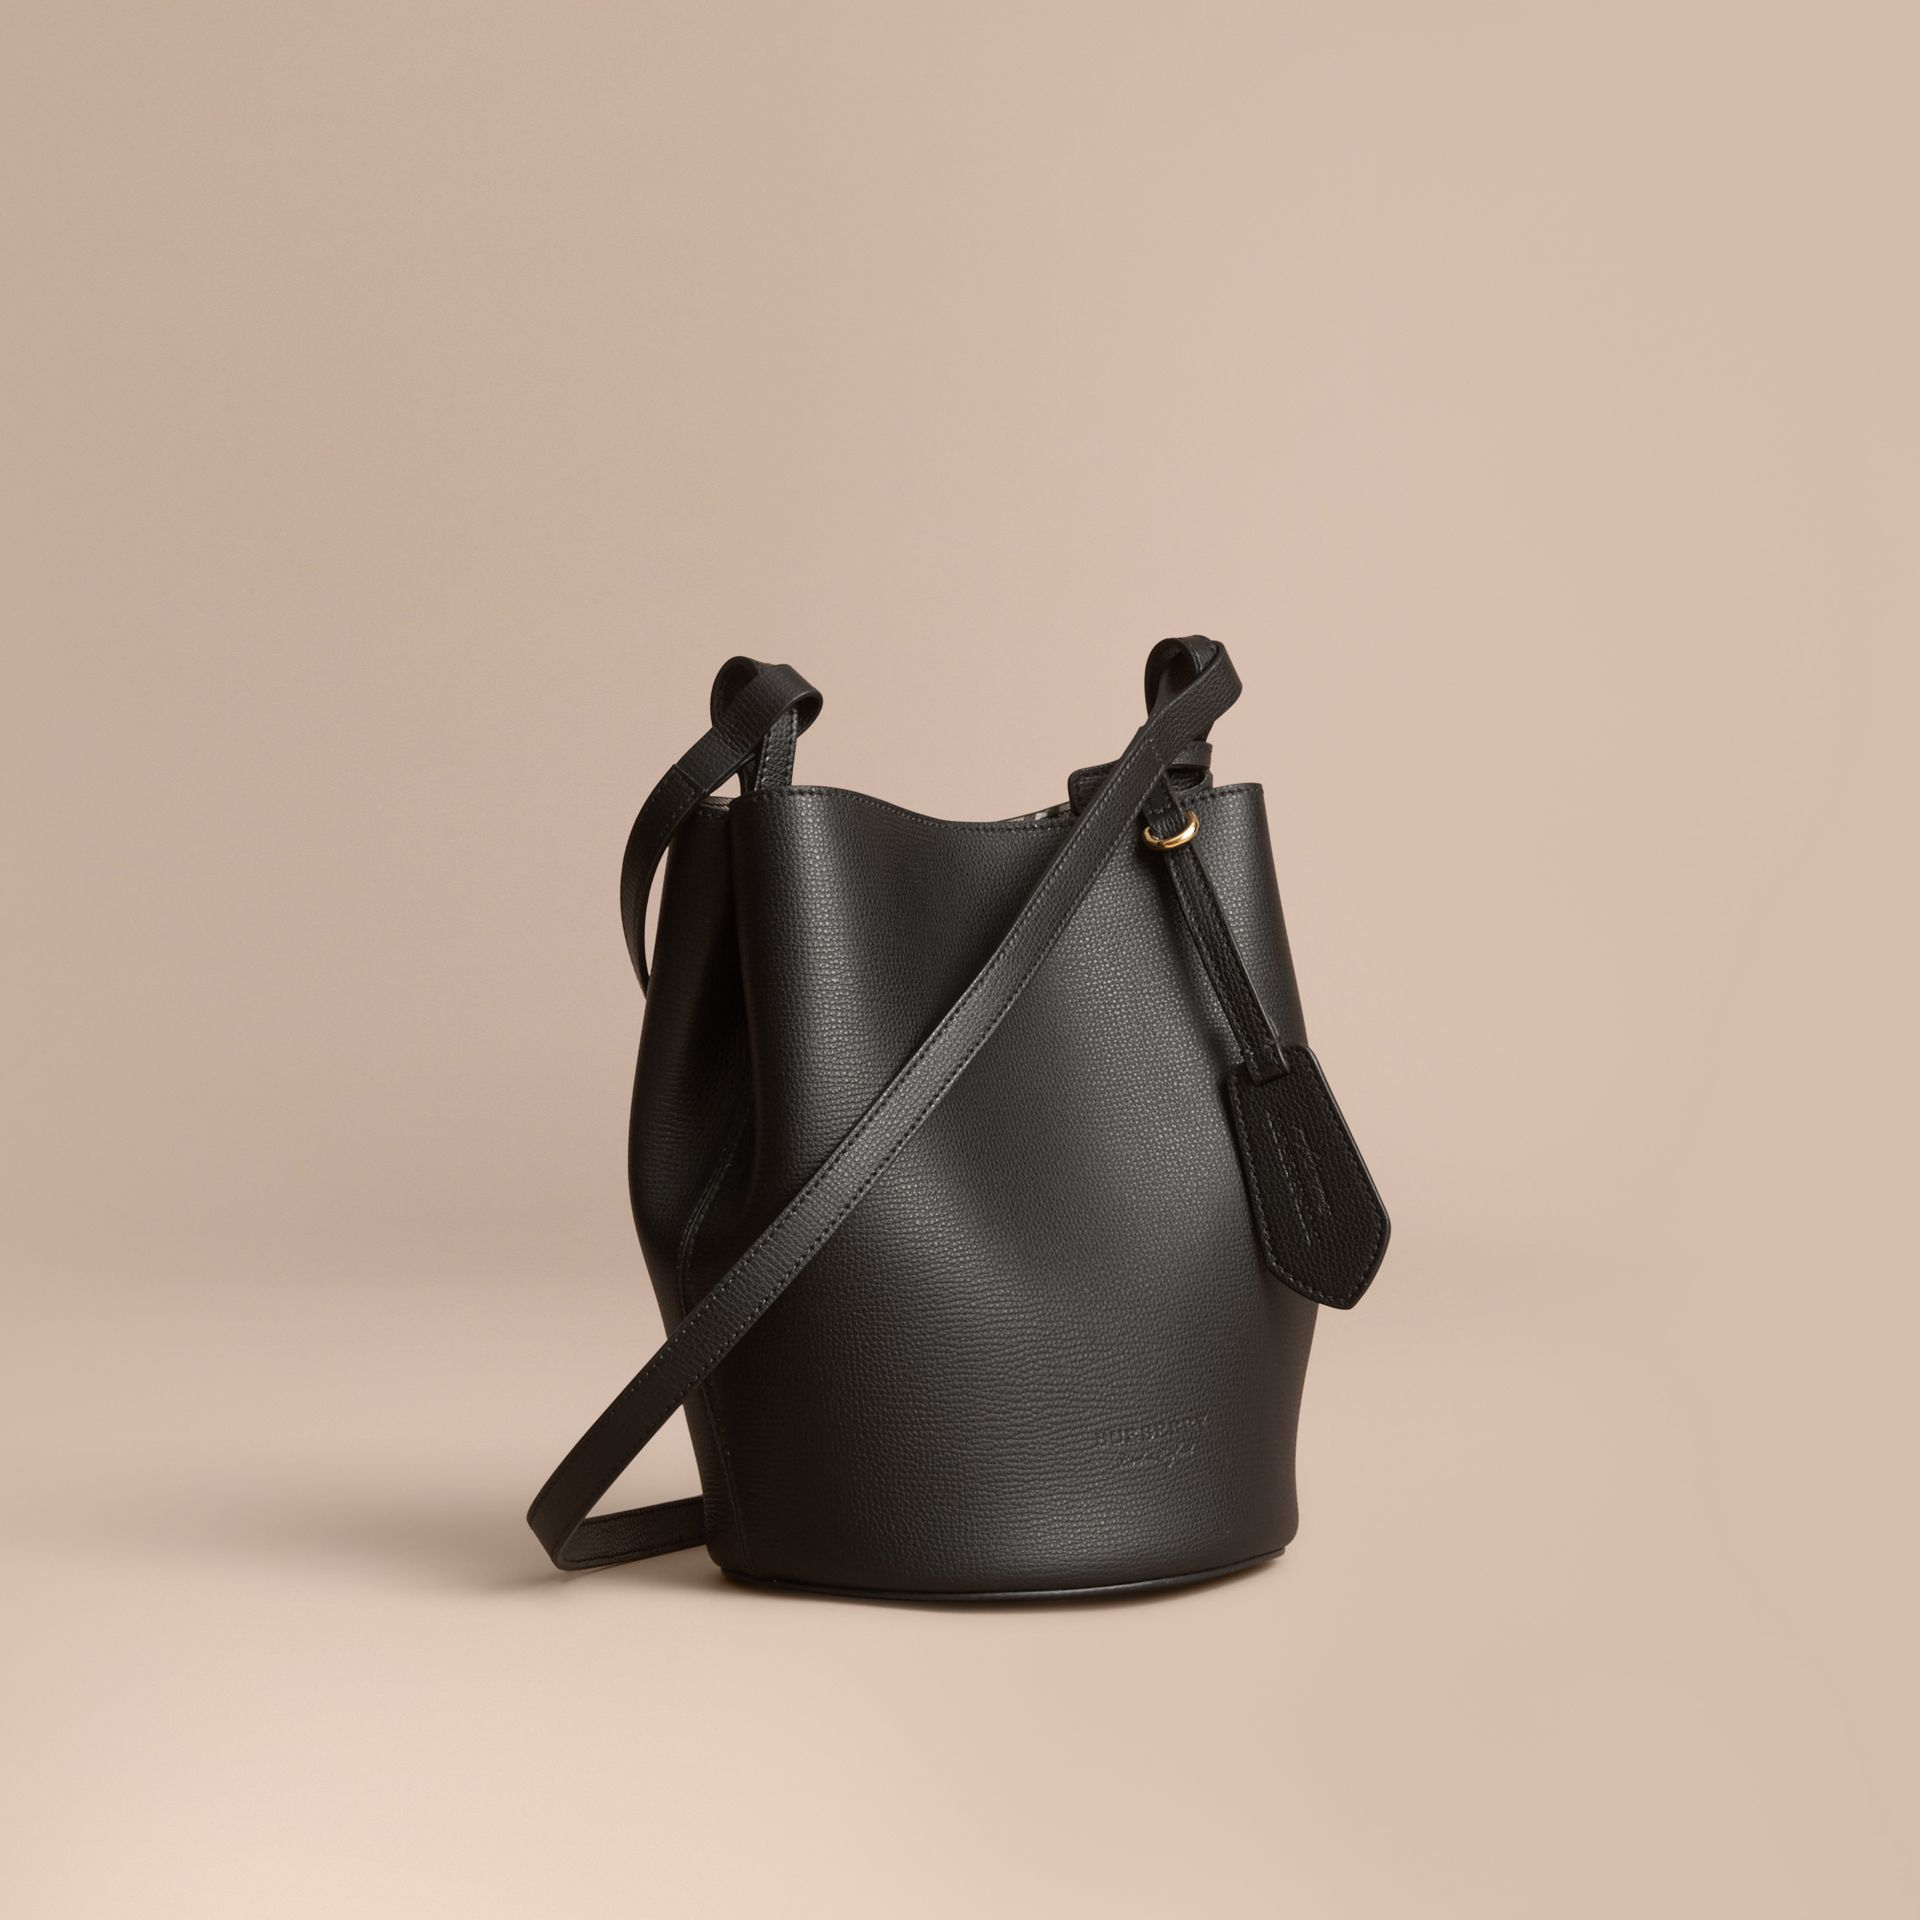 Leather and Haymarket Check Crossbody Bucket Bag in Black - Women | Burberry Australia - gallery image 1